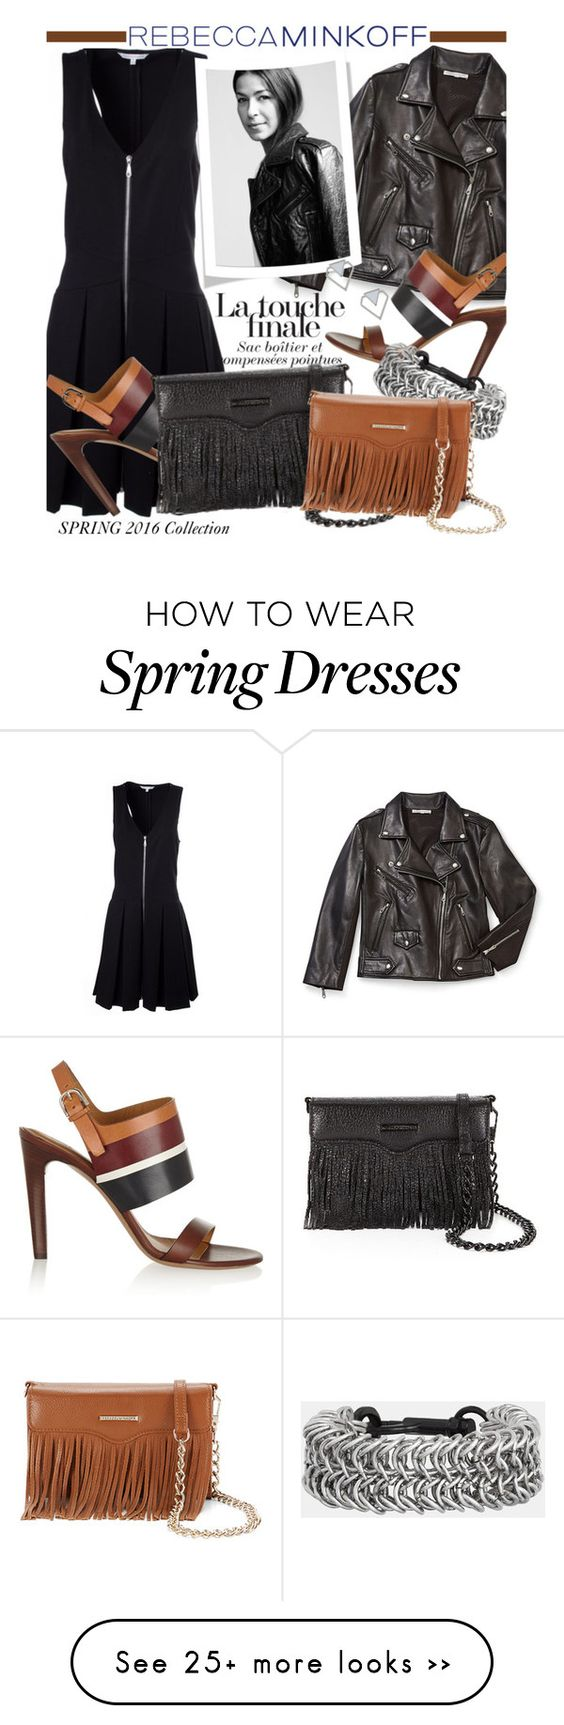 """Style Rebecca Minkoff's Spring 2016 Collection Now"" by honii on Polyvore featuring Rebecca Minkoff, Chloé, rebeccaminkoff and contestentry"